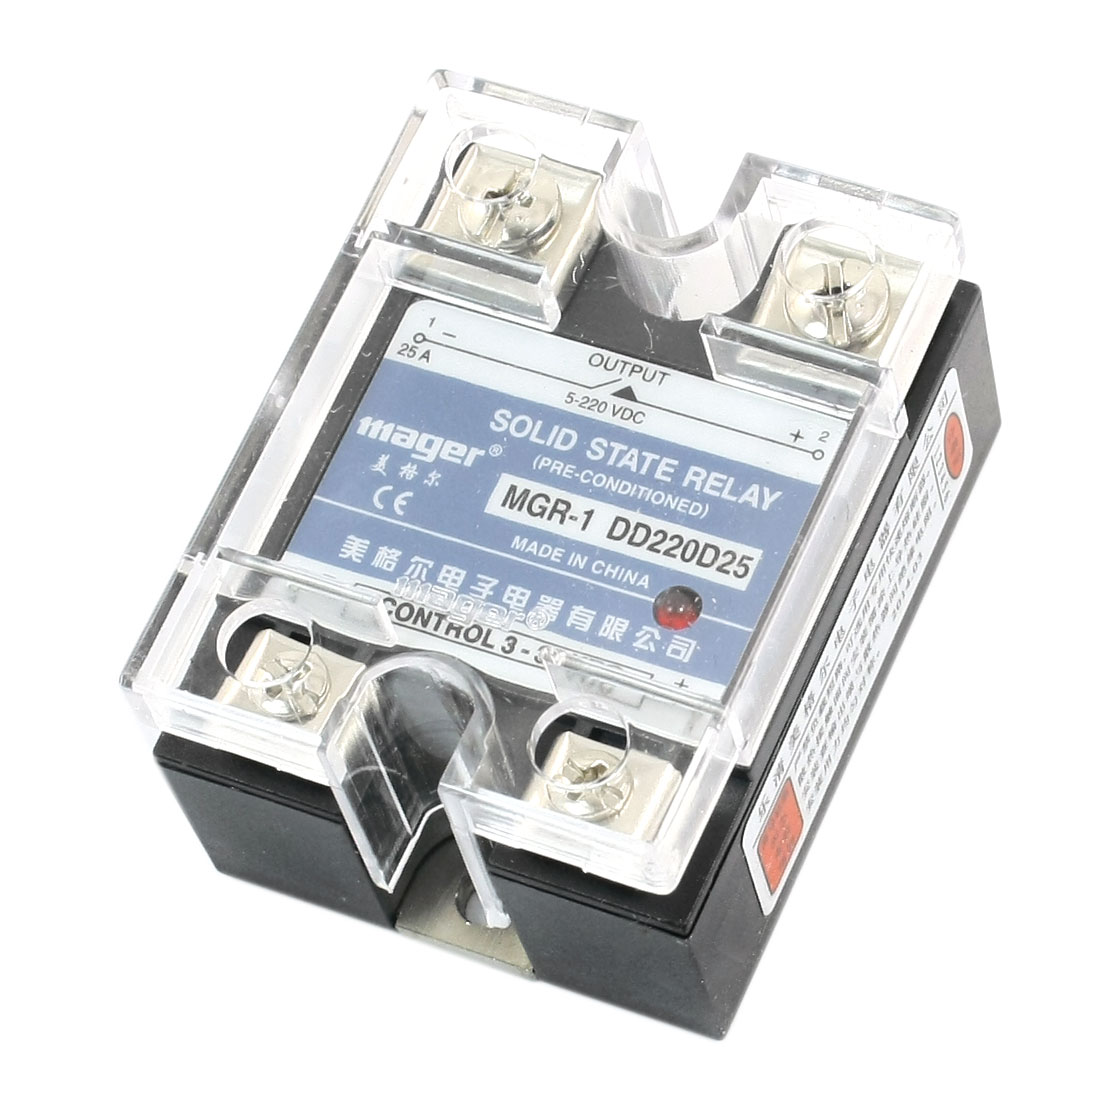 DC-DC 3-32V Input 5-220V 25A Output Rectangle Clear Cover 4 Screw Terminal Single Phase SSR Solid State Relay